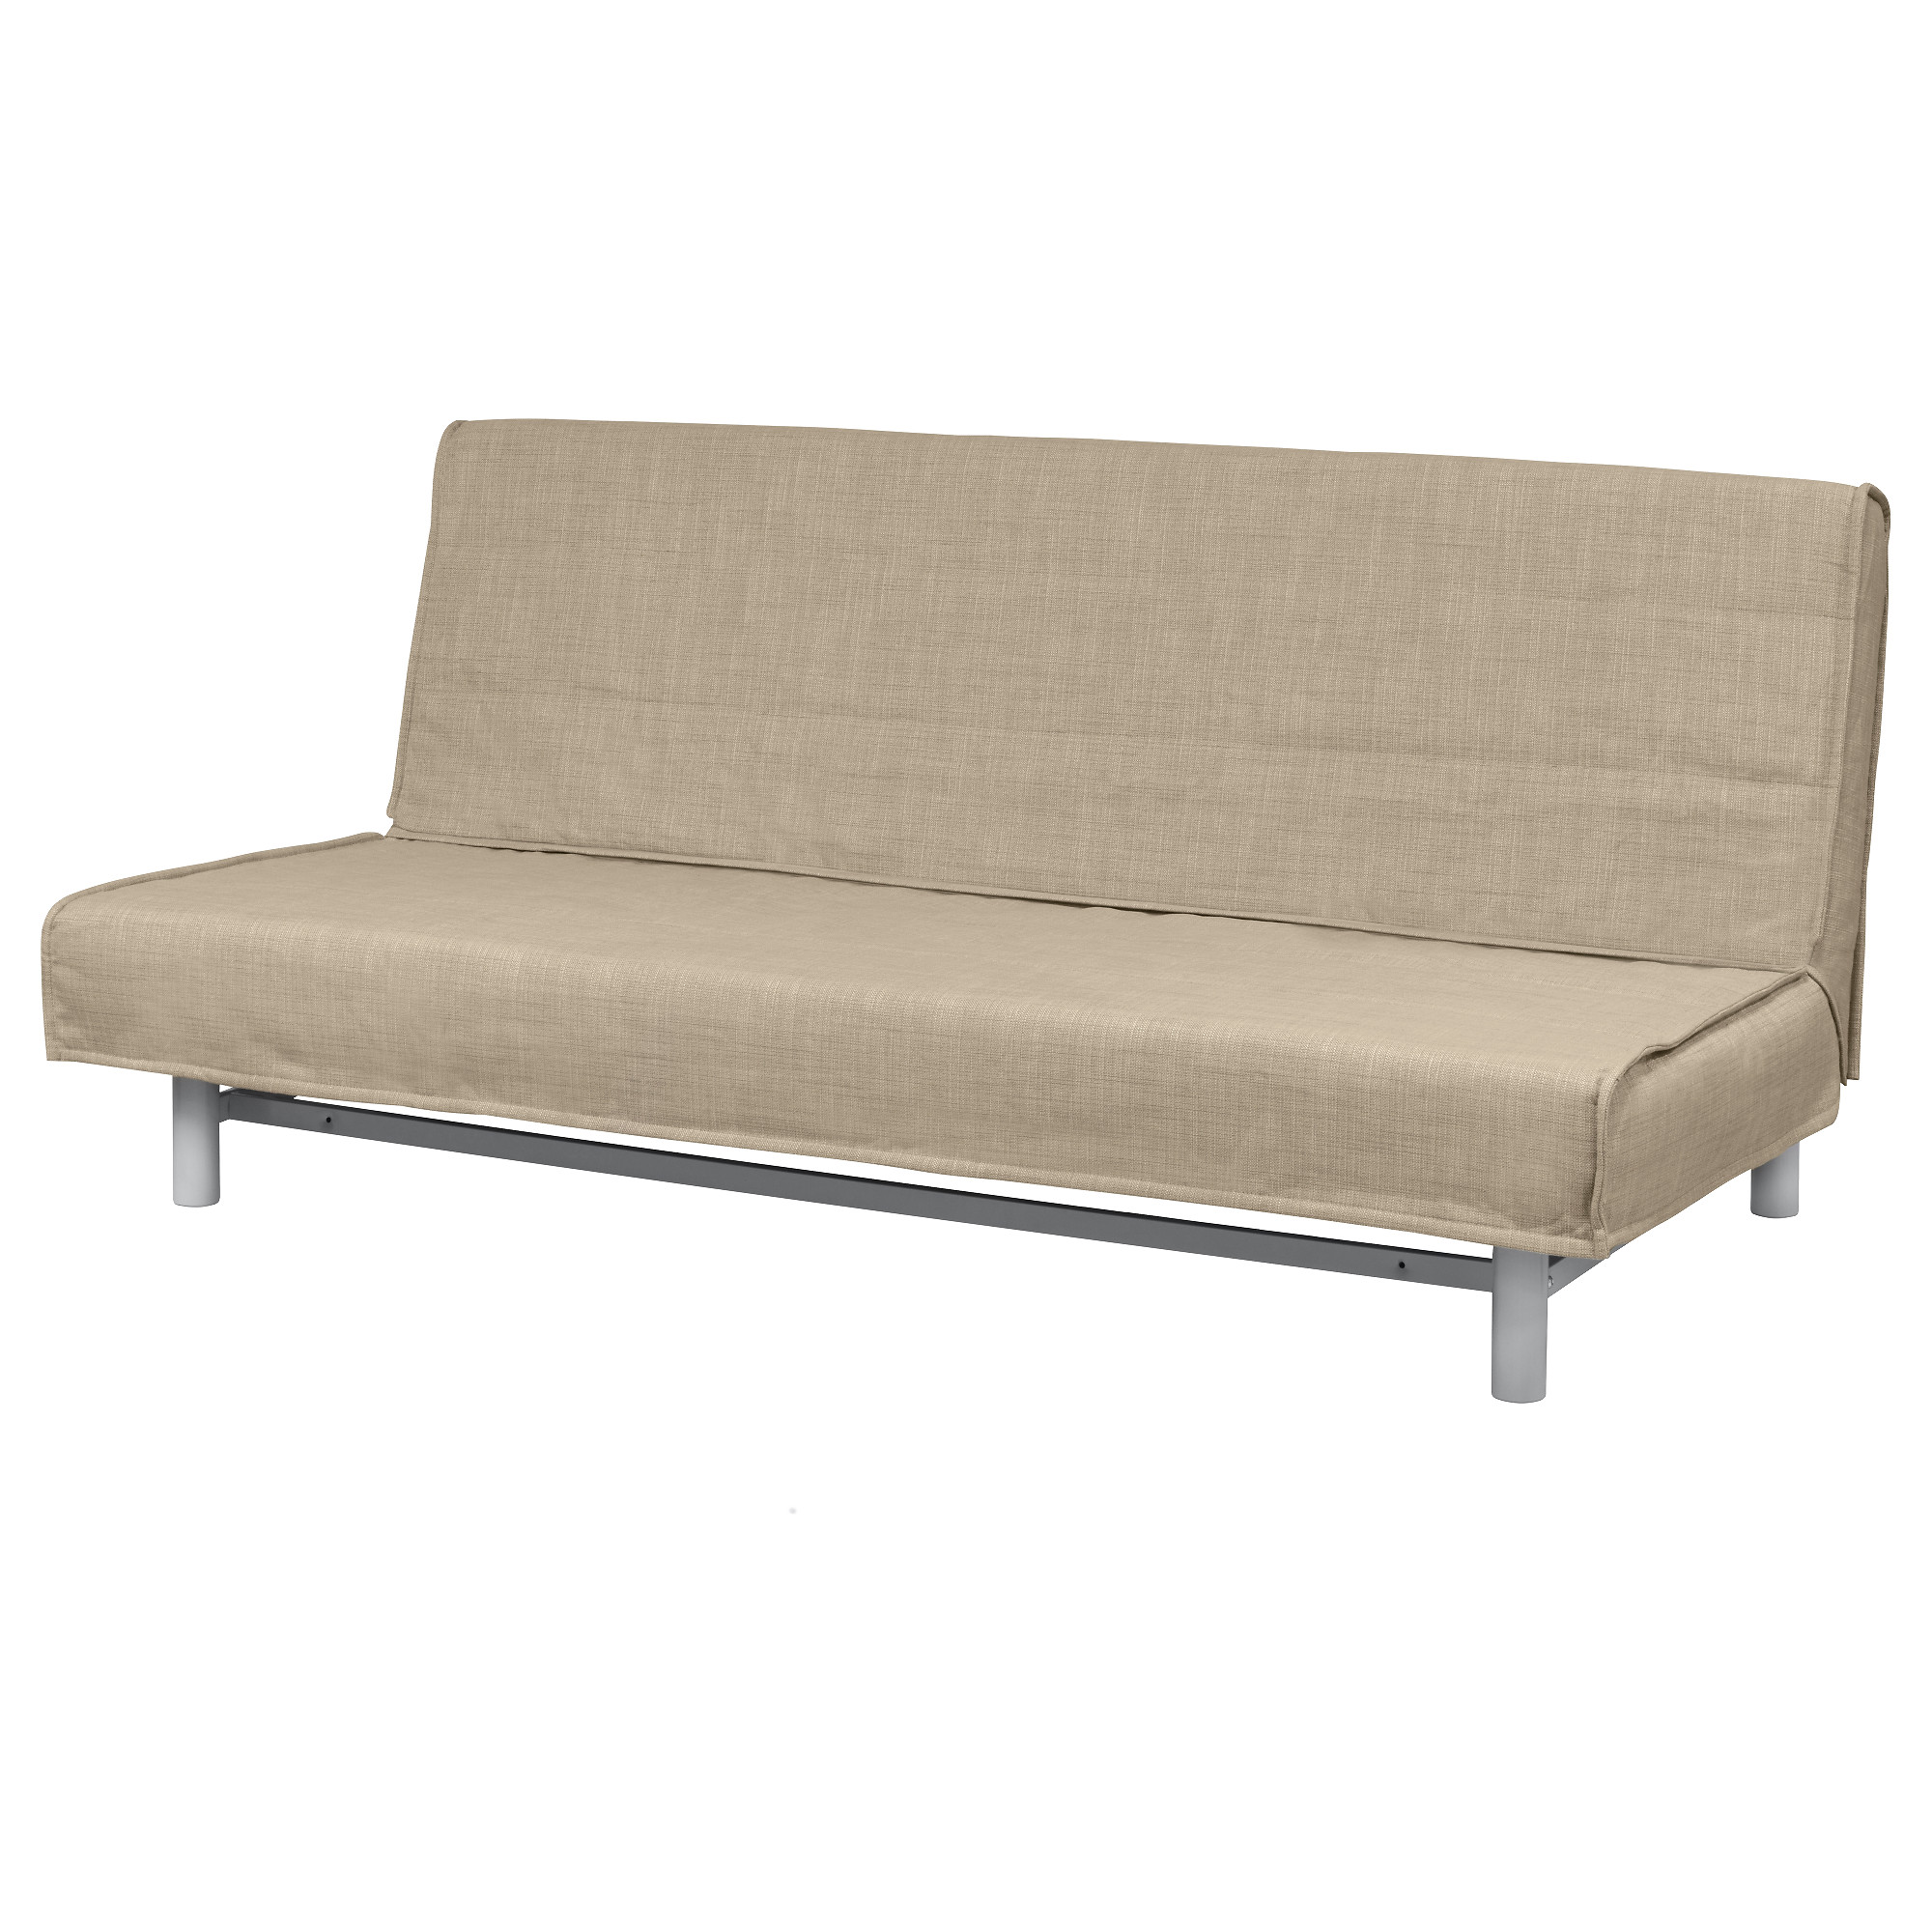 BEDDINGE Cover for sleeper sofa Knisa light gray IKEA